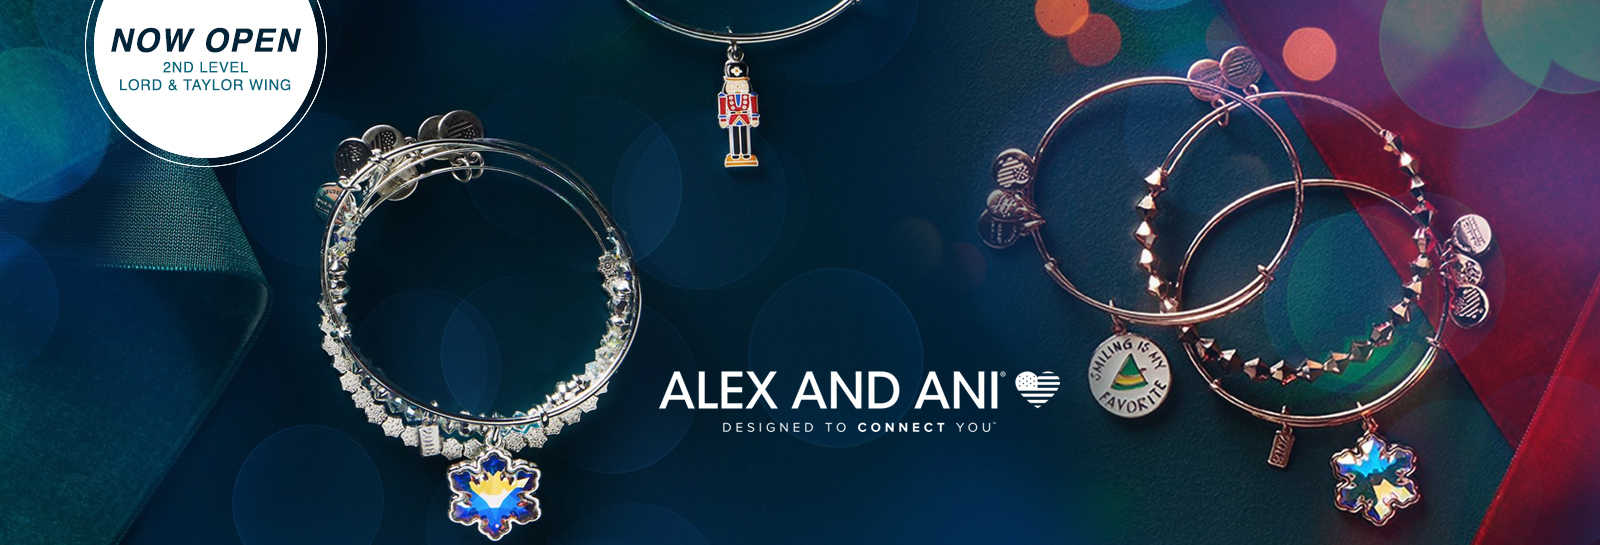 2008 12 14 Alex and Ani Slider